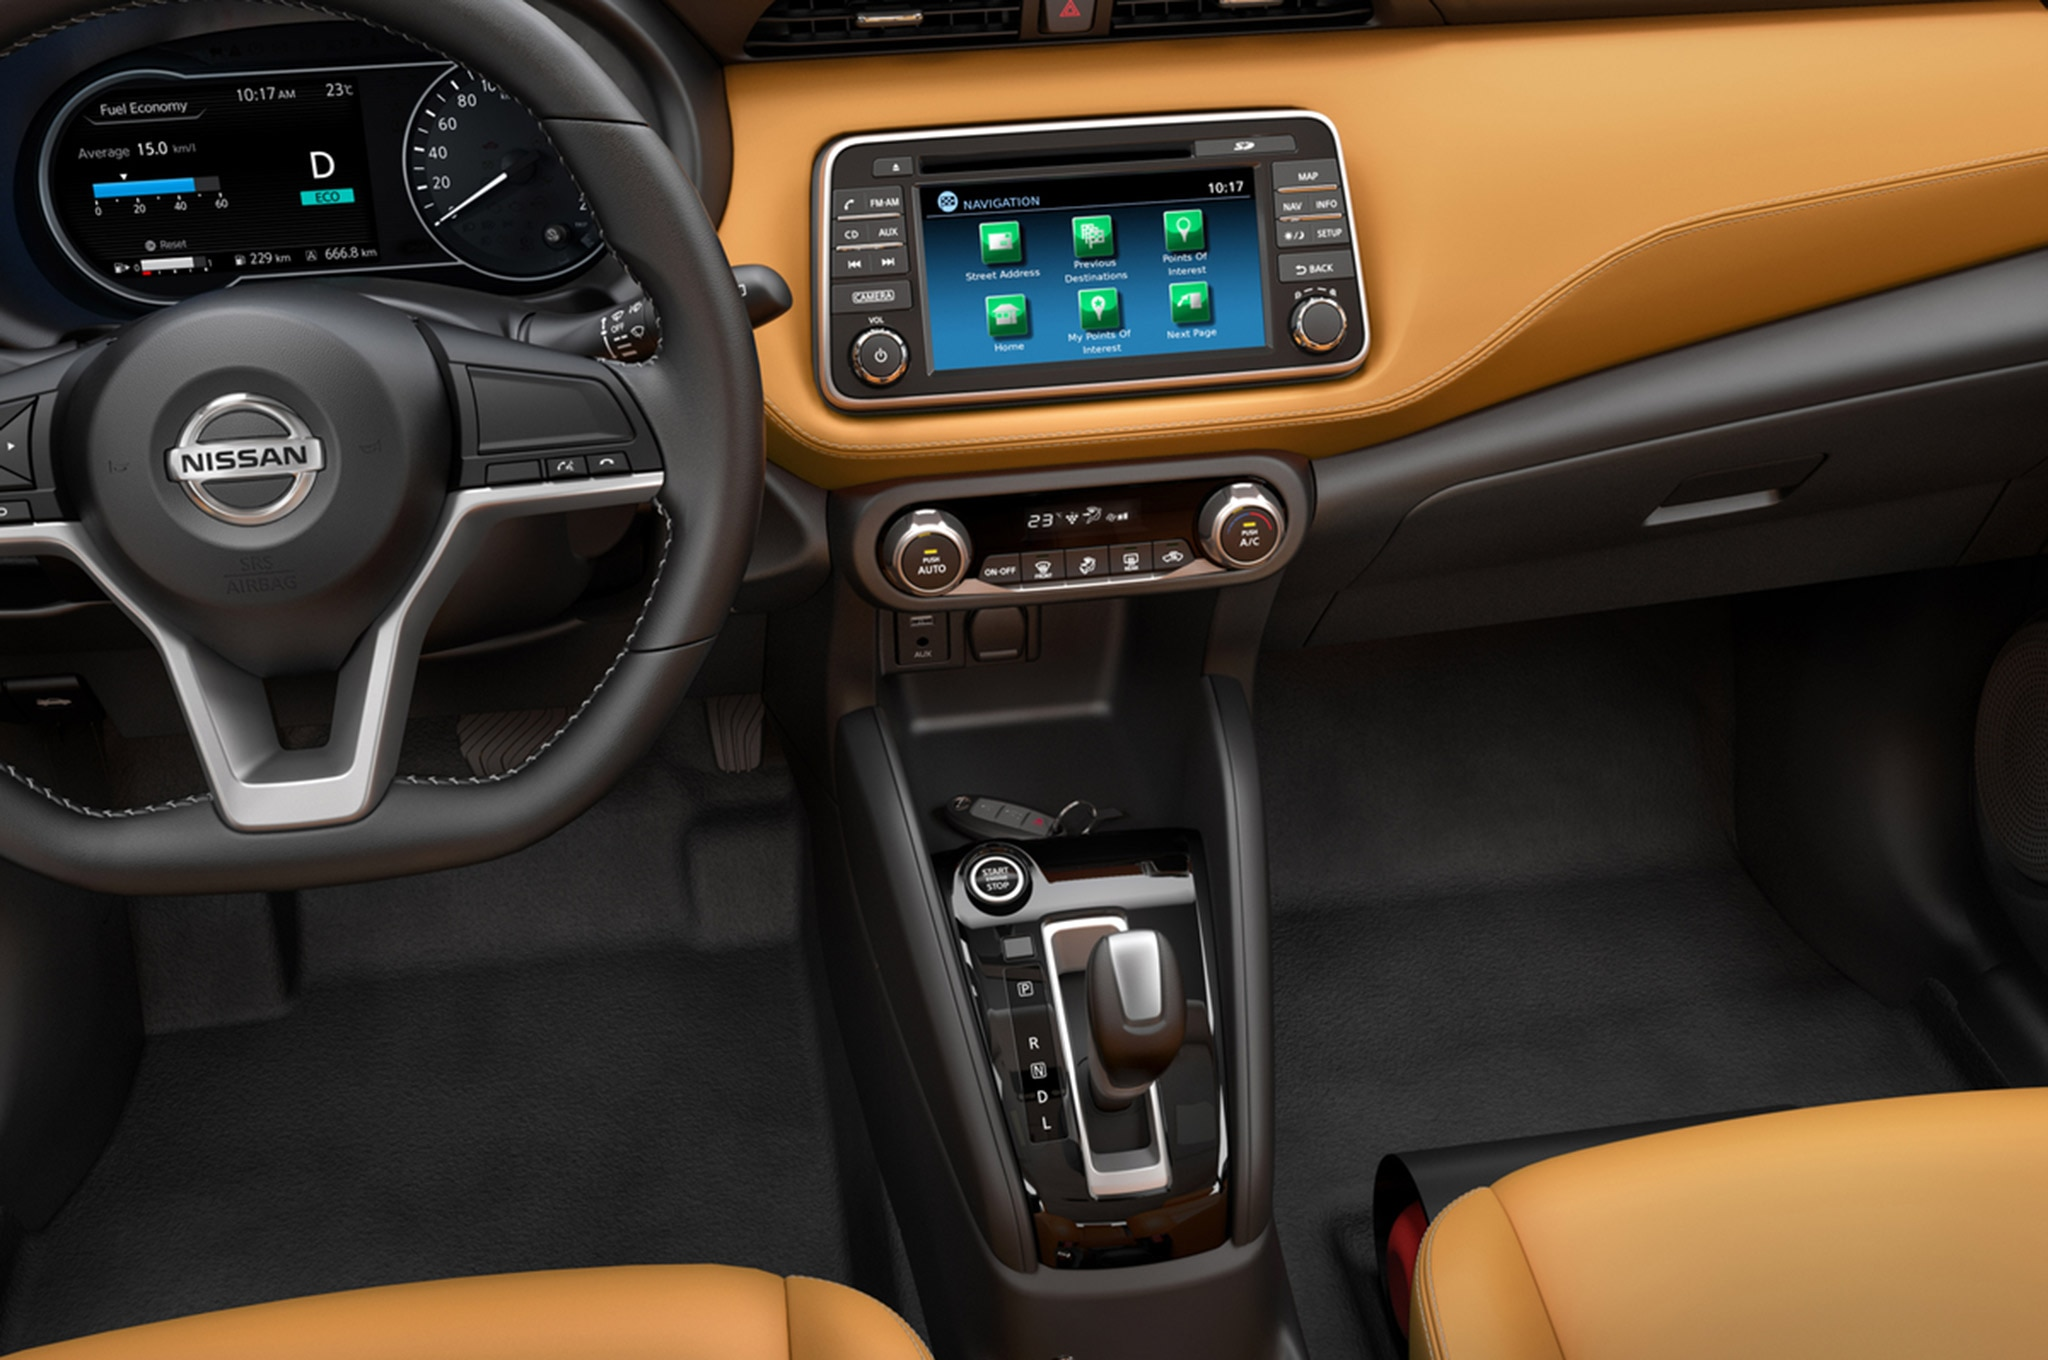 2018 nissan kicks interior. beautiful interior show more in 2018 nissan kicks interior s